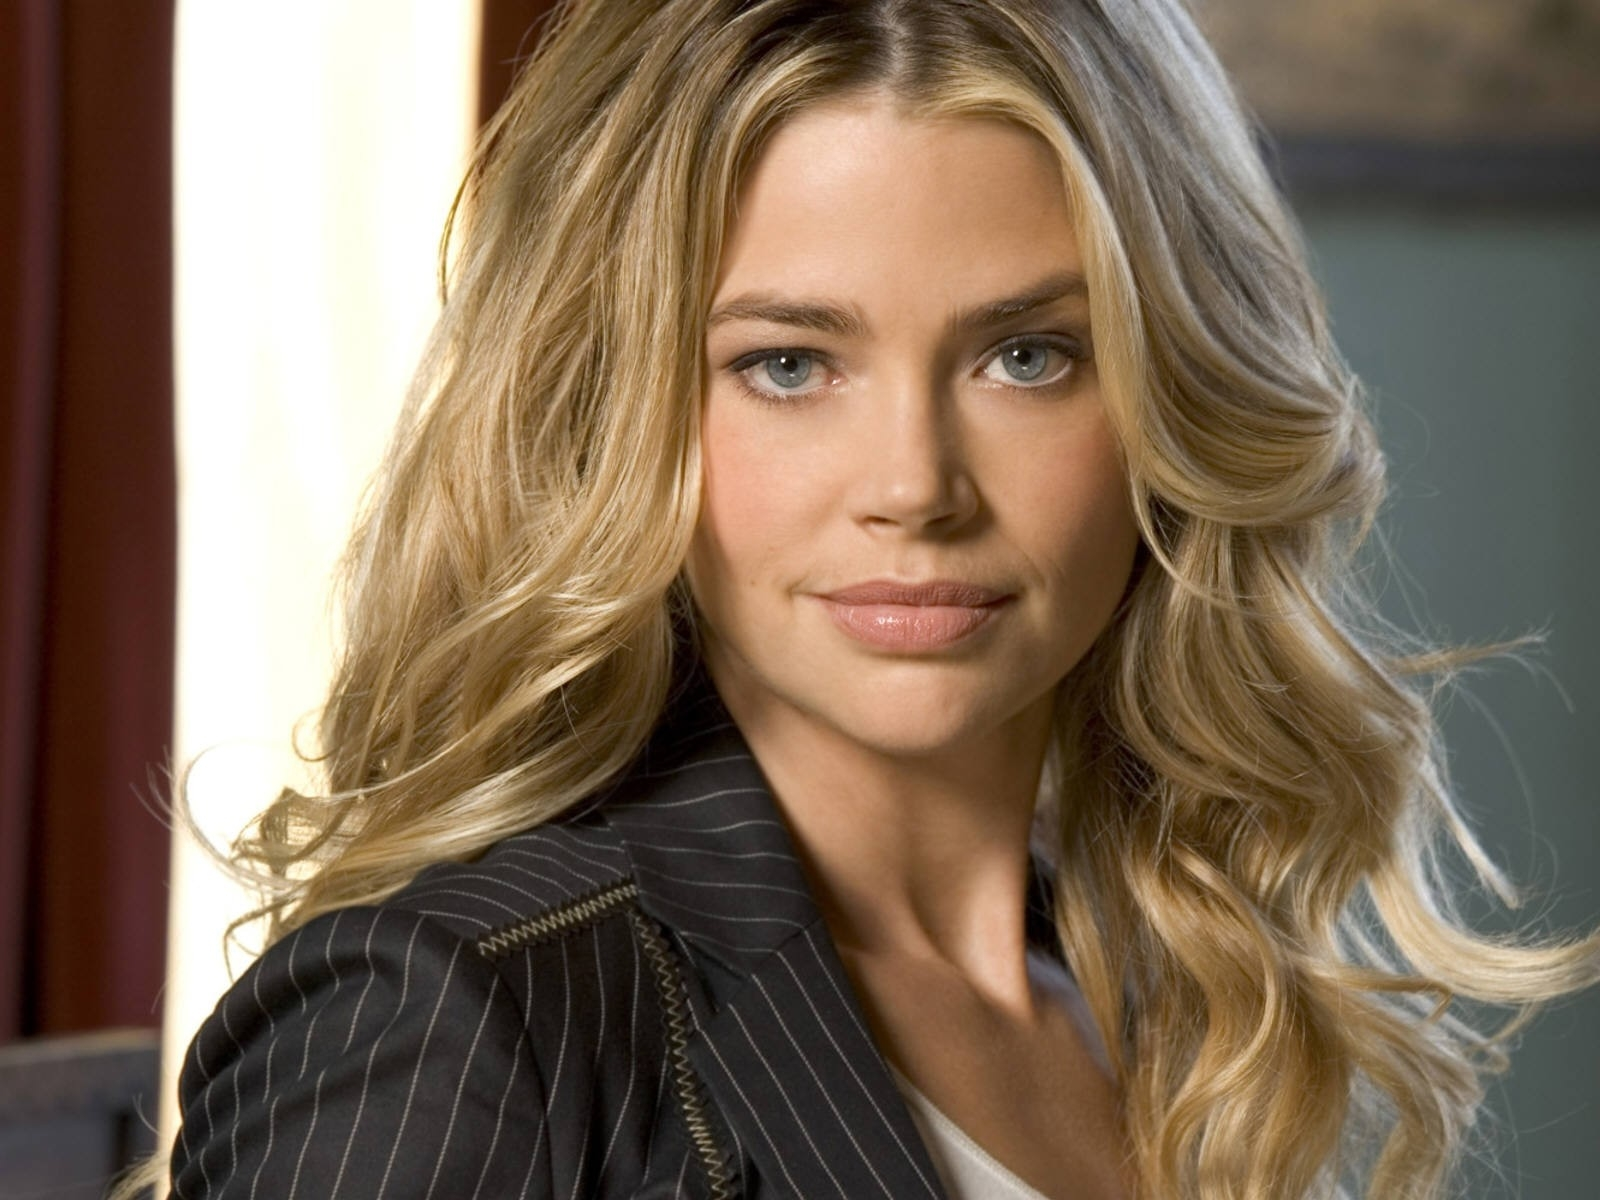 Wallpaper di Denise Richards - 36